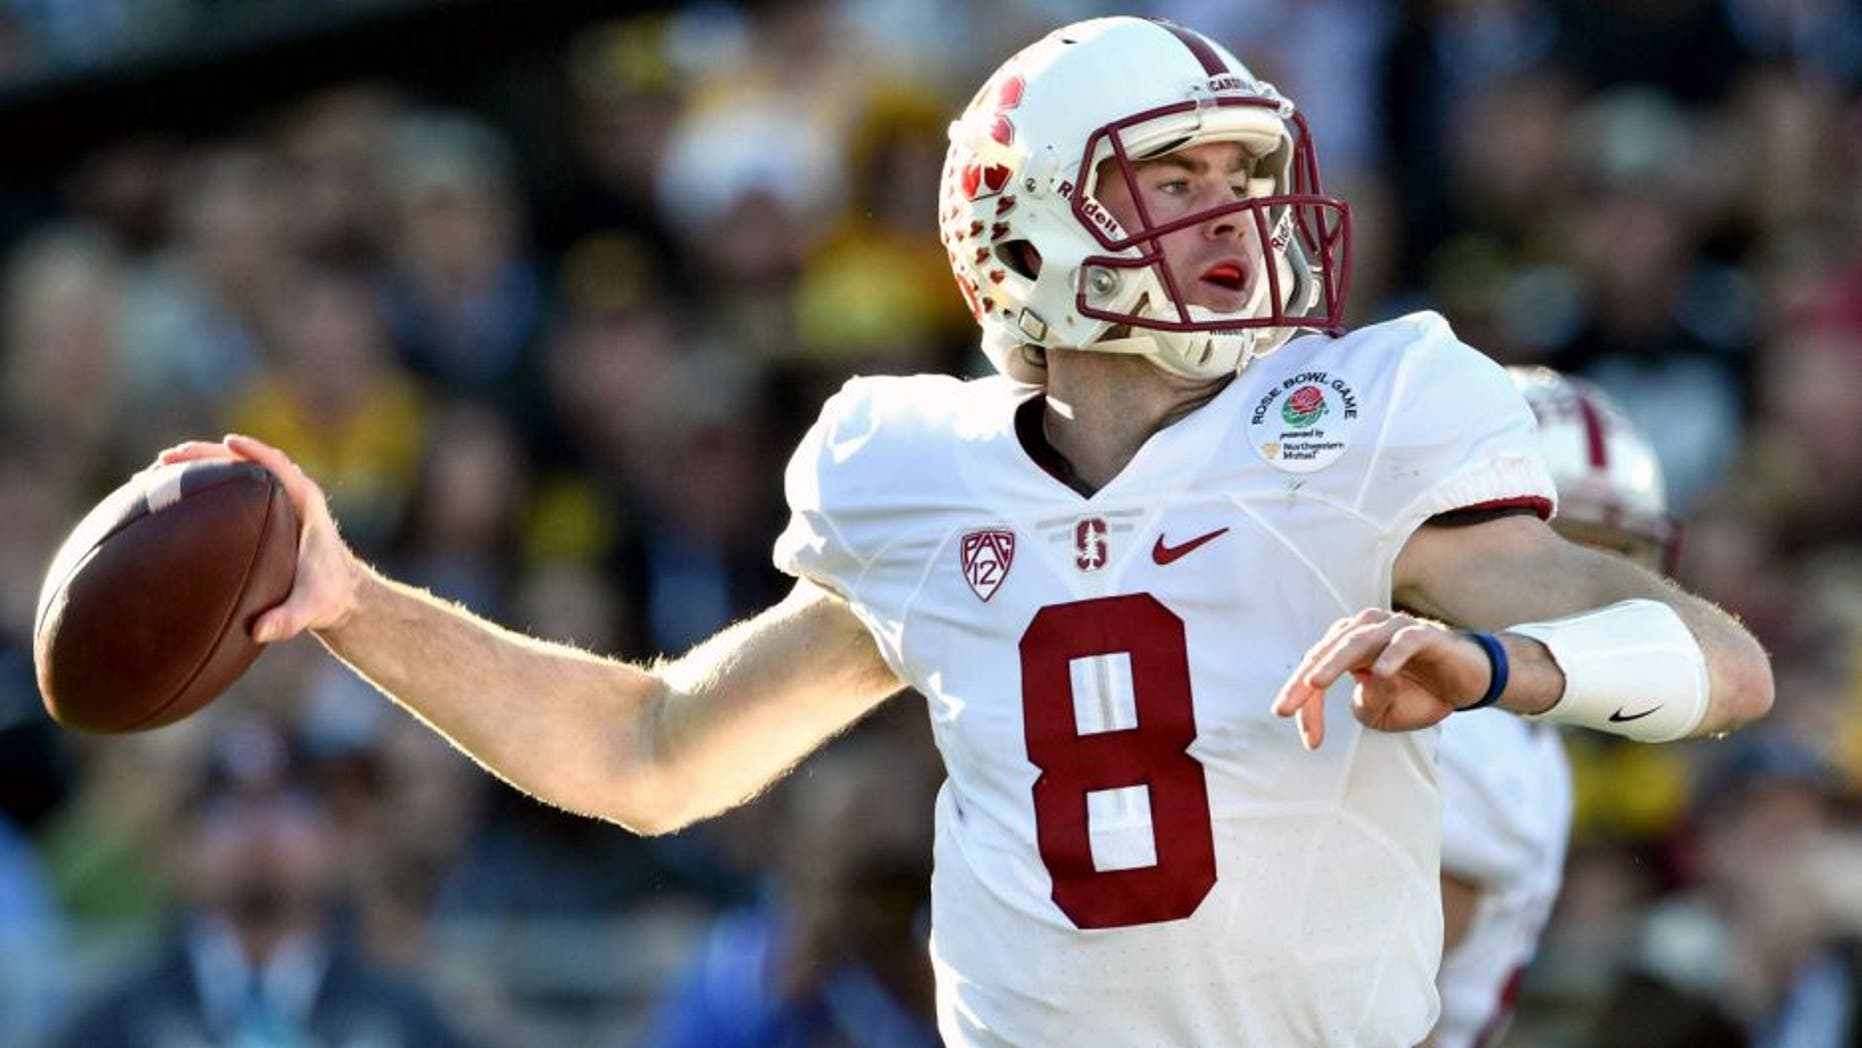 Jan 1, 2016; Pasadena, CA, USA; Stanford Cardinal quarterback Kevin Hogan (8) drops back to pass against the Iowa Hawkeyes during the second quarter in the 2016 Rose Bowl at Rose Bowl. Mandatory Credit: Kirby Lee-USA TODAY Sports